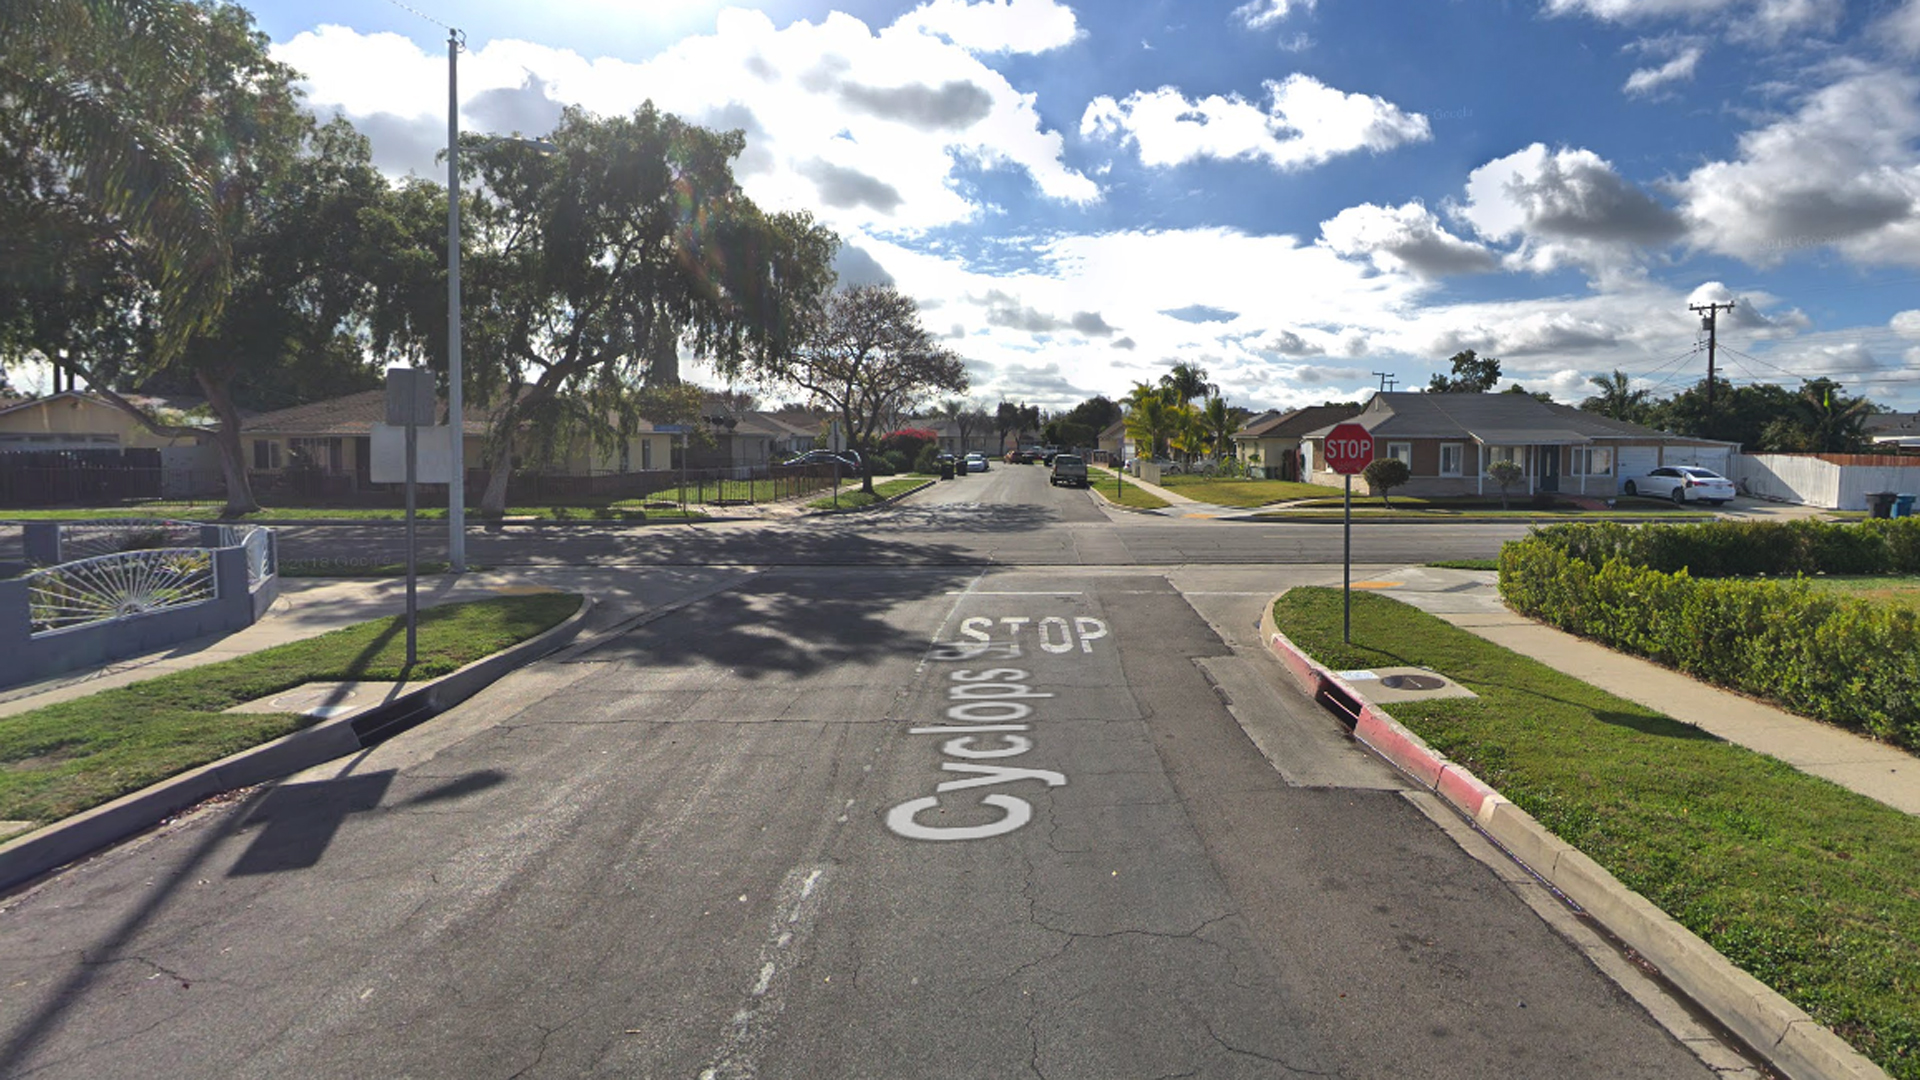 The intersection of Cyclops Street and Bombardier Avenue, as viewed in a Google Street View image in March of 2018.